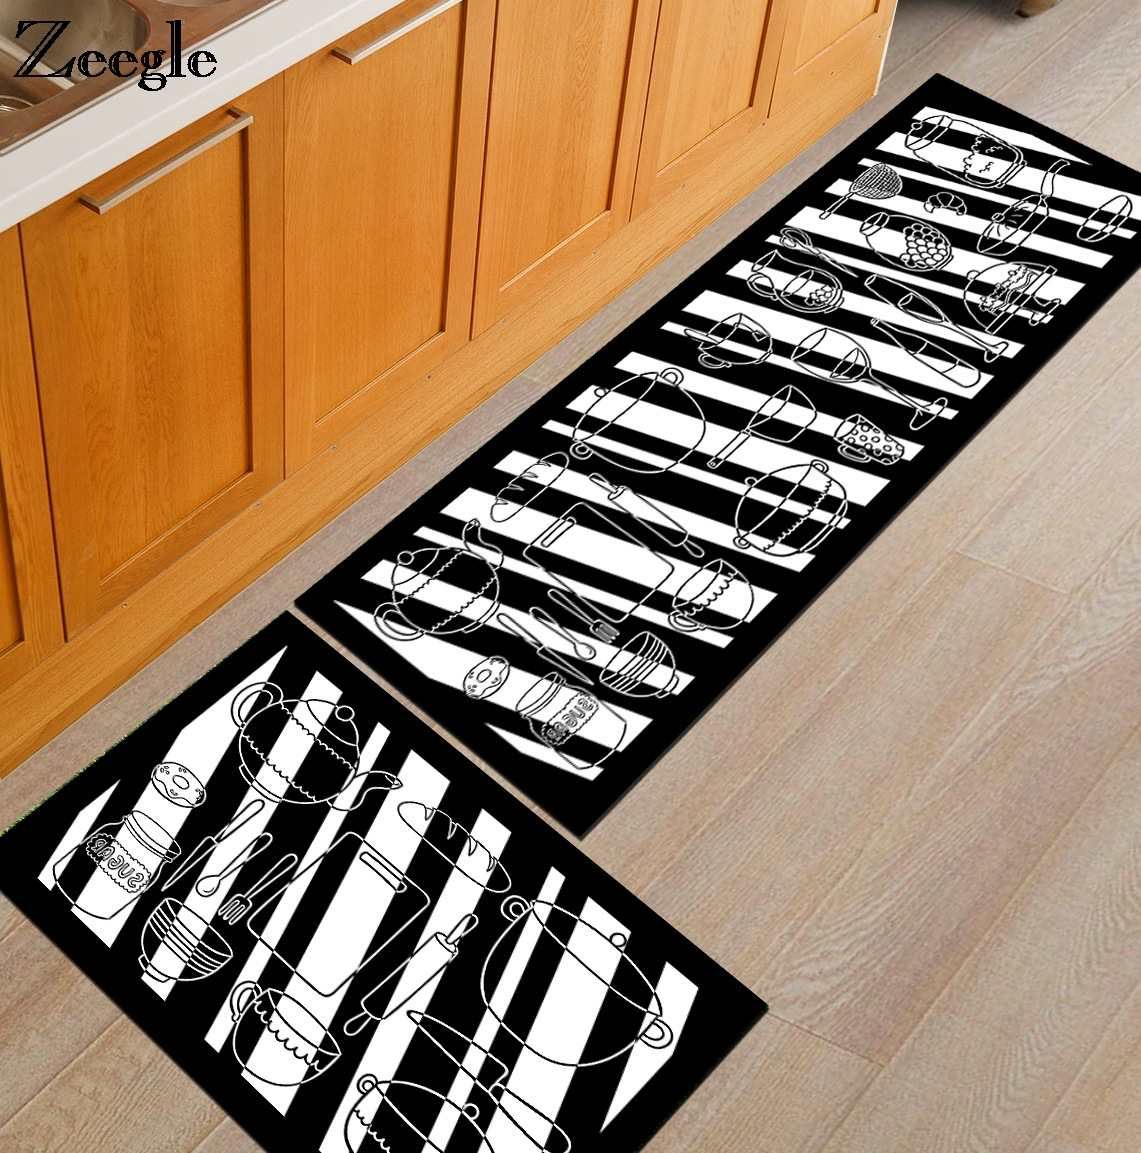 Us 7 25 44 Off Zeegle Cooking Utensil Printed Kitchen Rugs Anti Slip Coffee Table Floor Mats Home Dinging Room Area Rug Kitchen Floor Mats In Rug